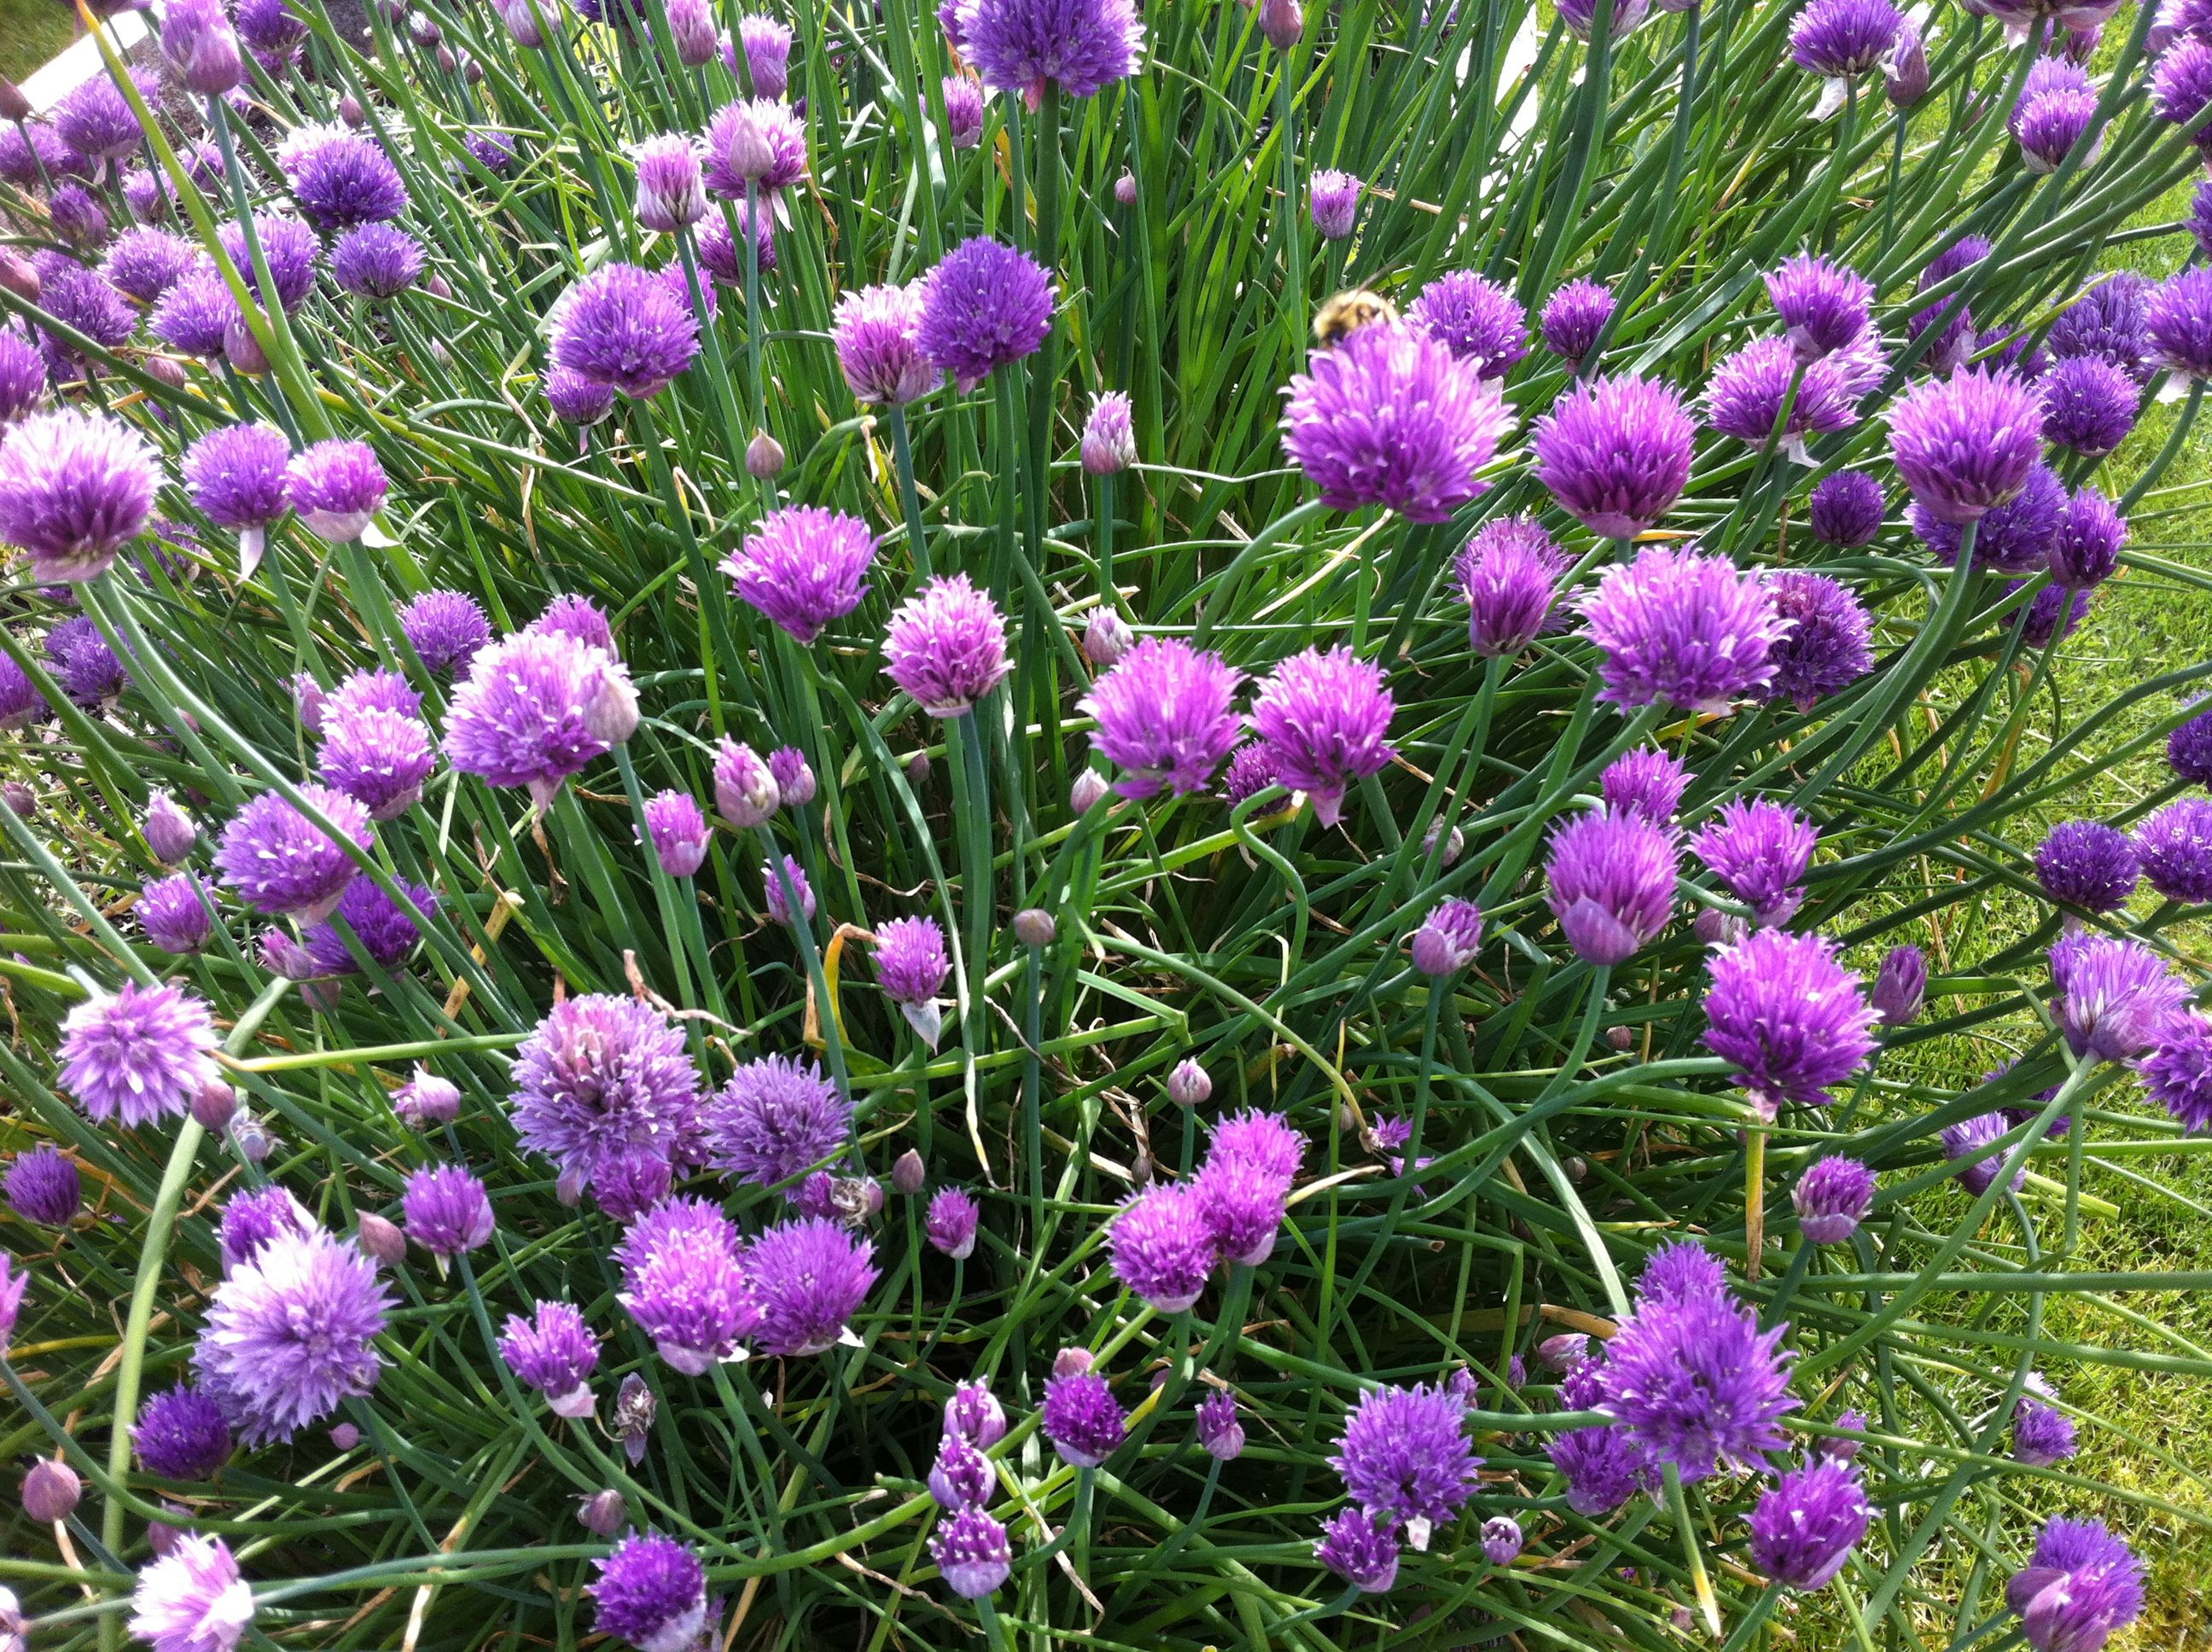 Chives! #flowers #chives http://www.realfx.com/